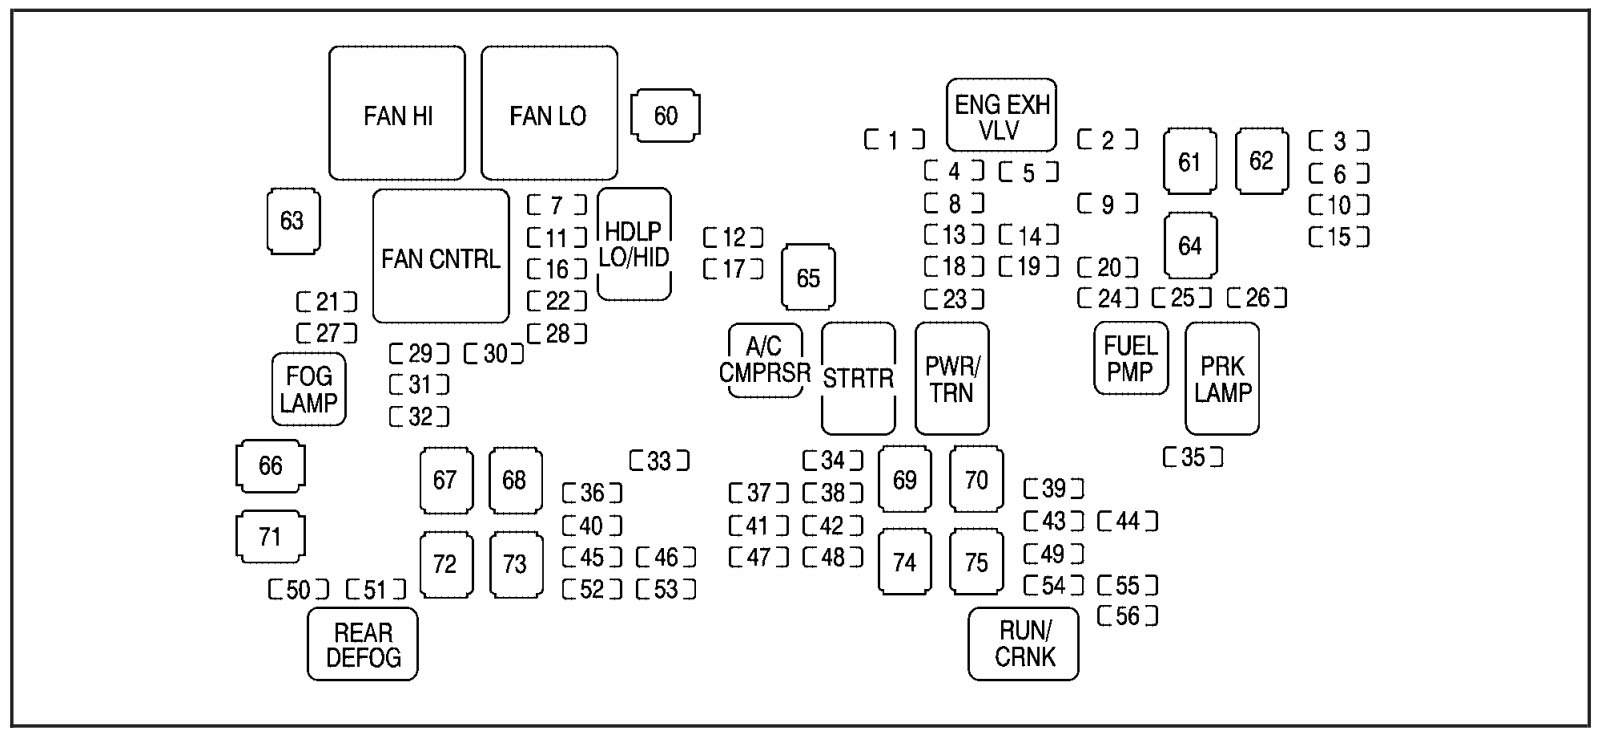 Fuse Box Diagram 2007 Hyundai Azera - Wiring Diagram | Hyundai Azera Fuse Box Diagram |  | Wiring Diagram